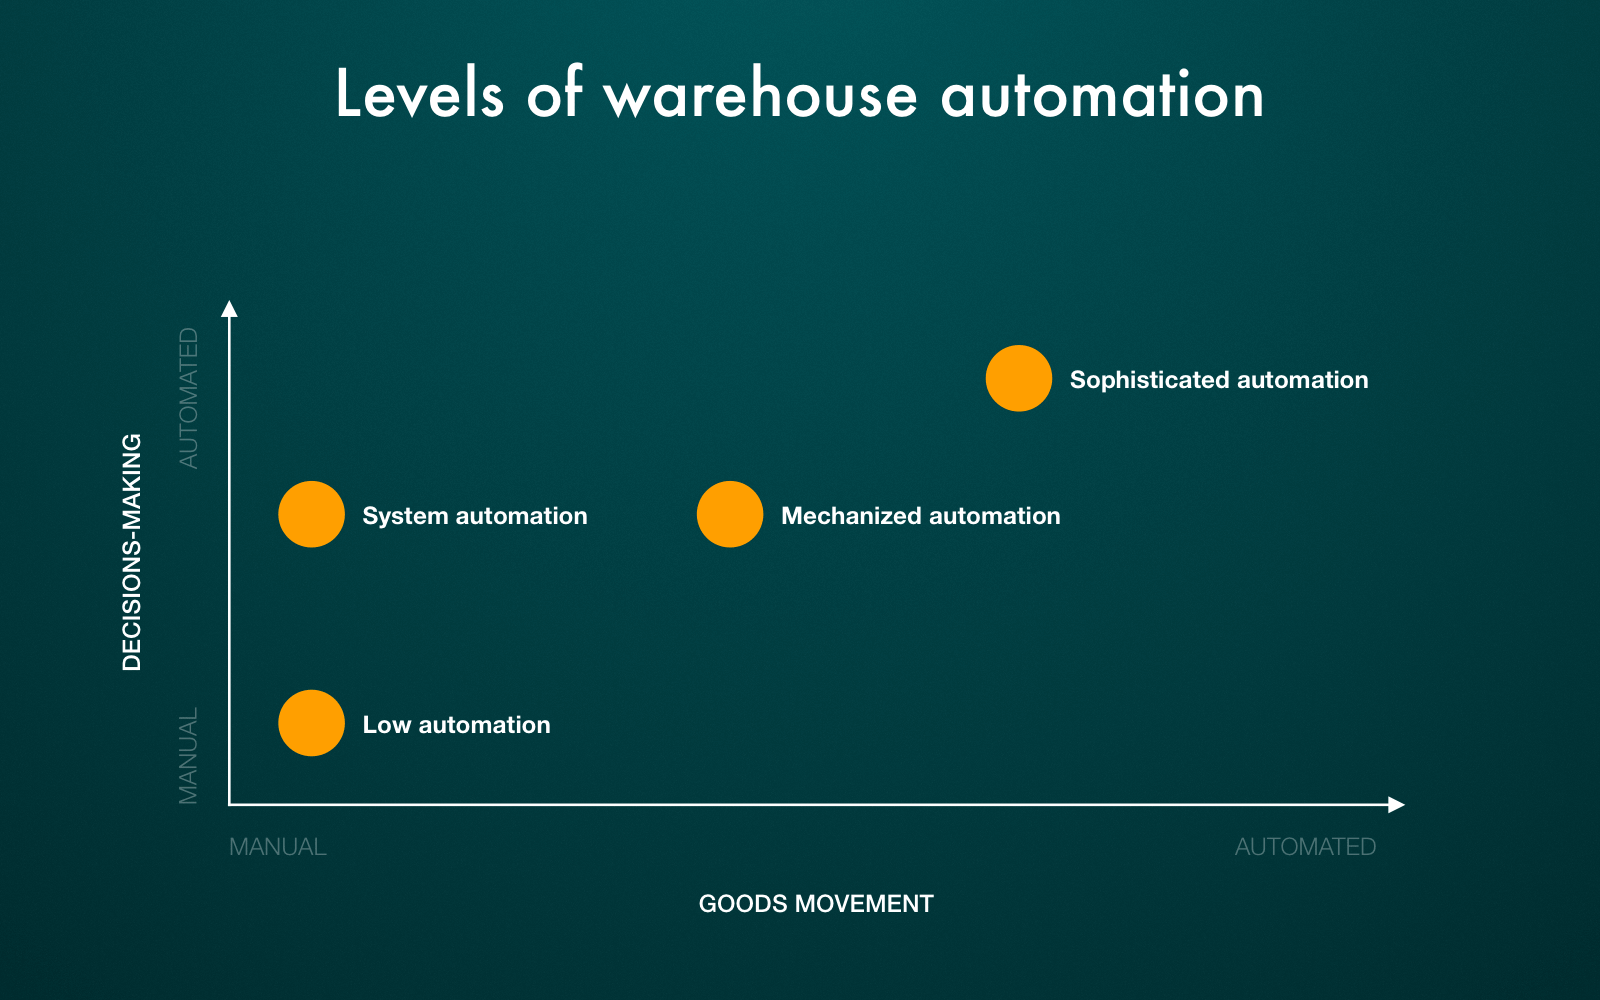 Warehouse automation by levels